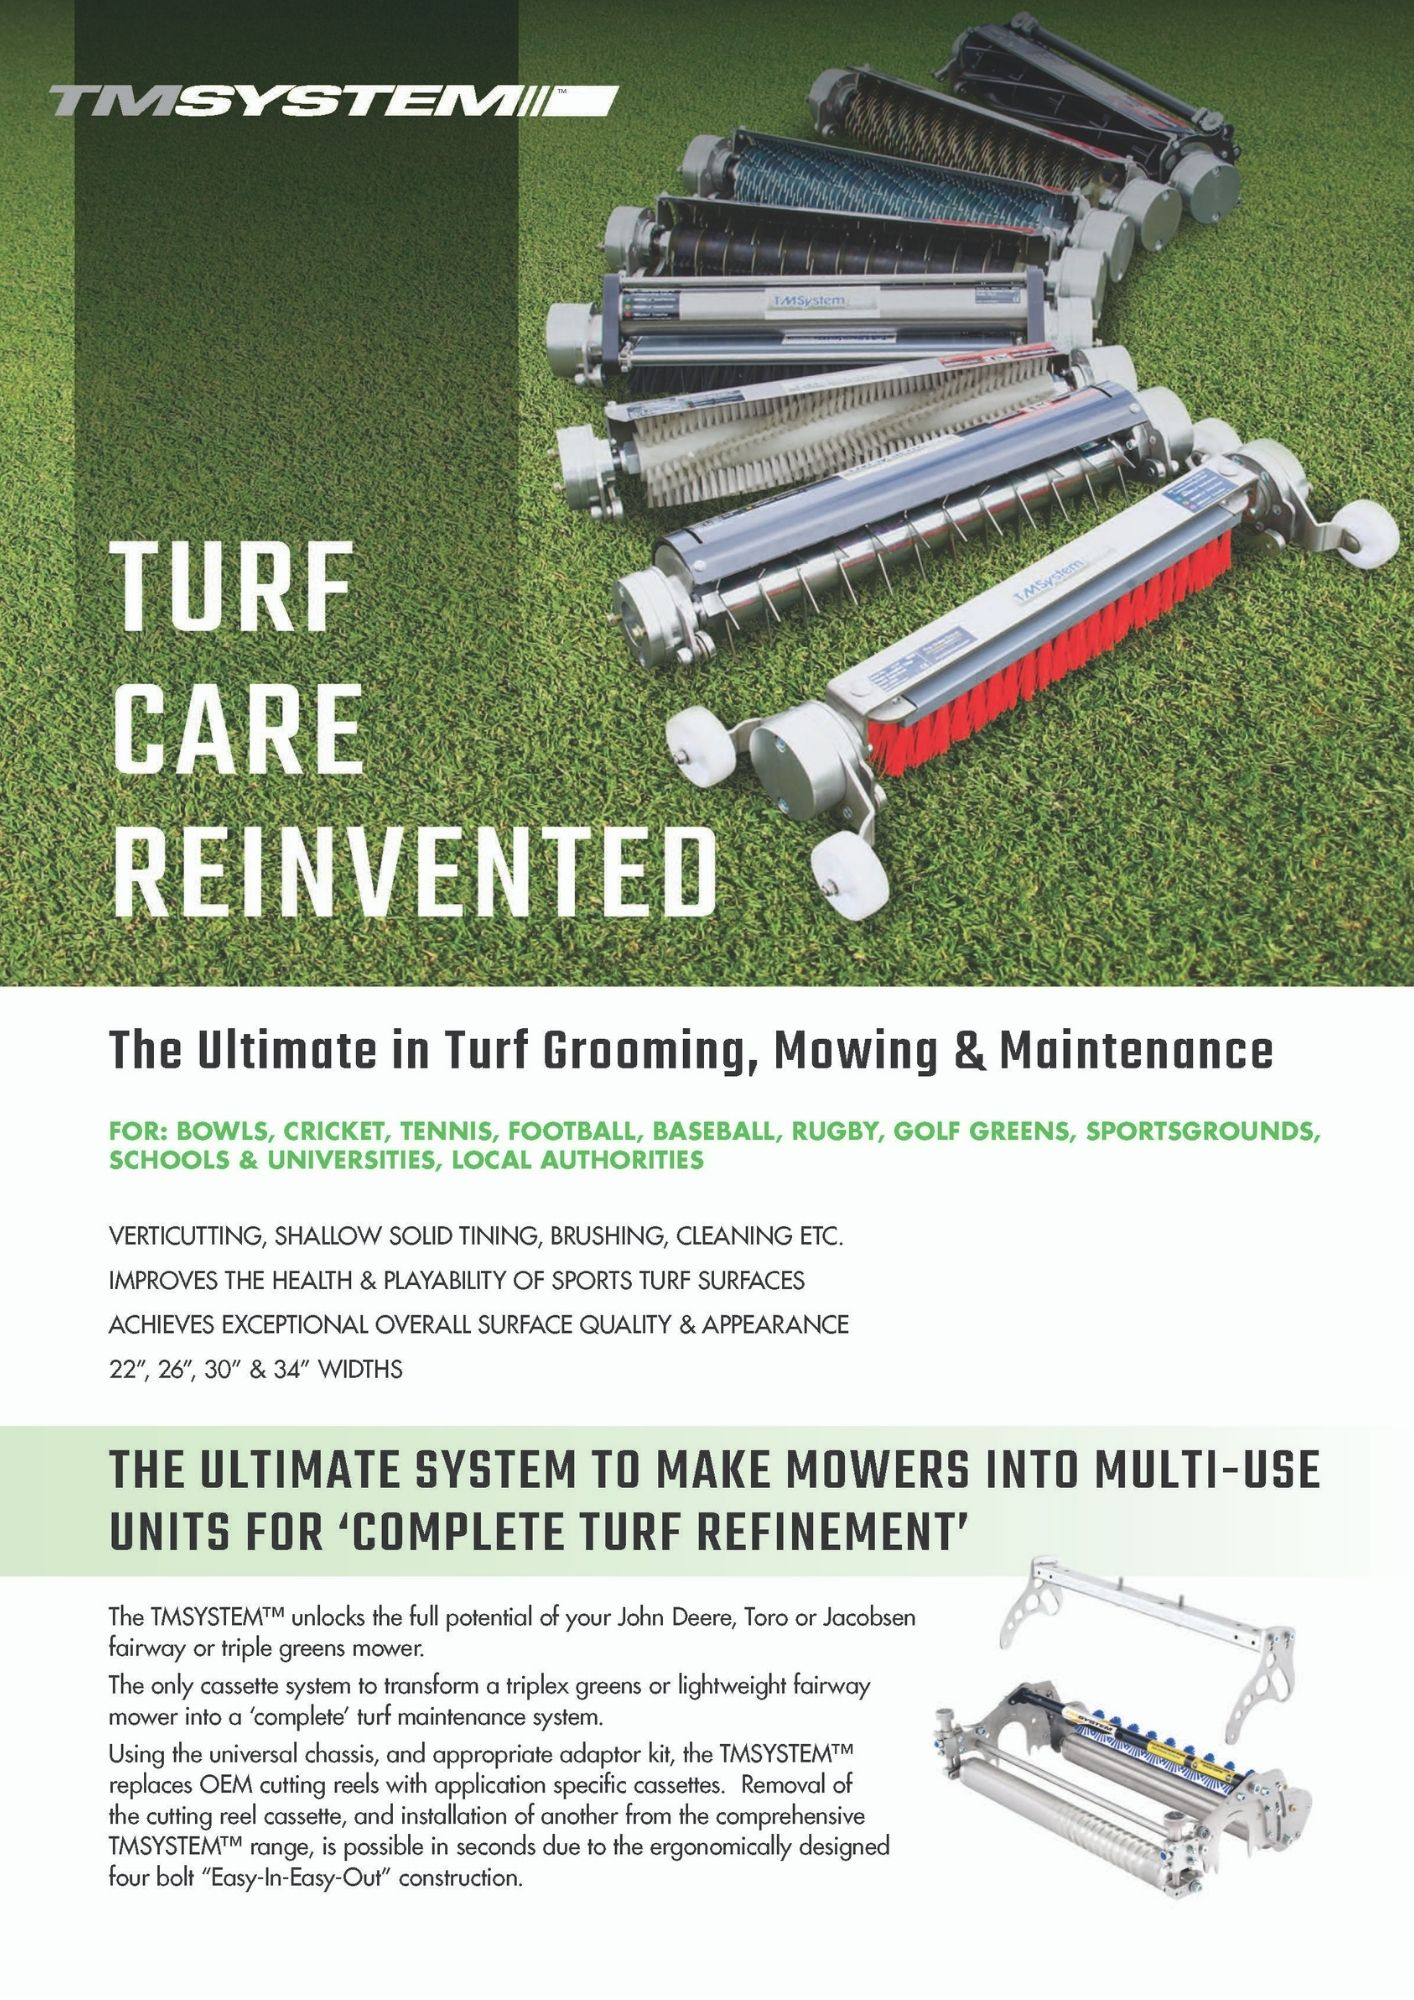 TMSYSTEM™ - Turf Care Reinvented